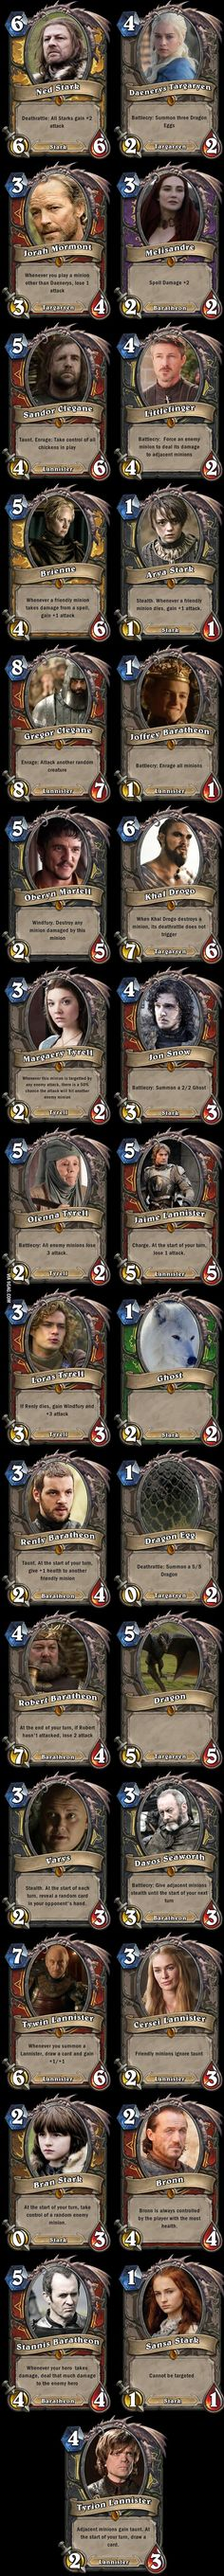 Hearthstone x A Song of Ice and Fire -- if only the GoT characters had cards in Hearthstone!